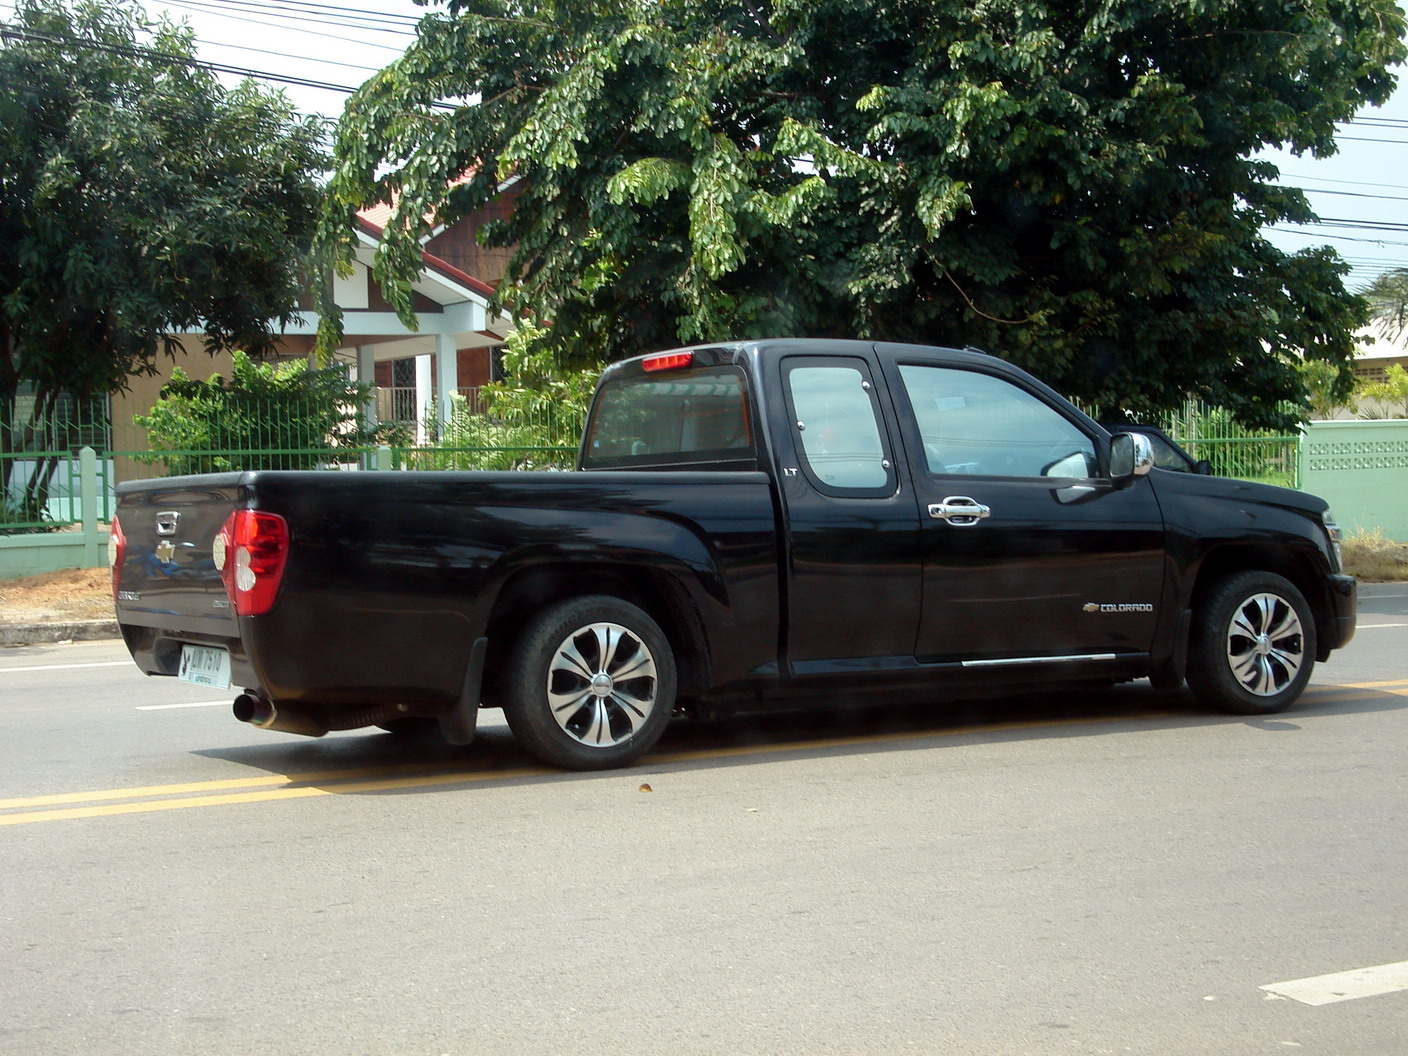 Chevrolet Colorado photo 12